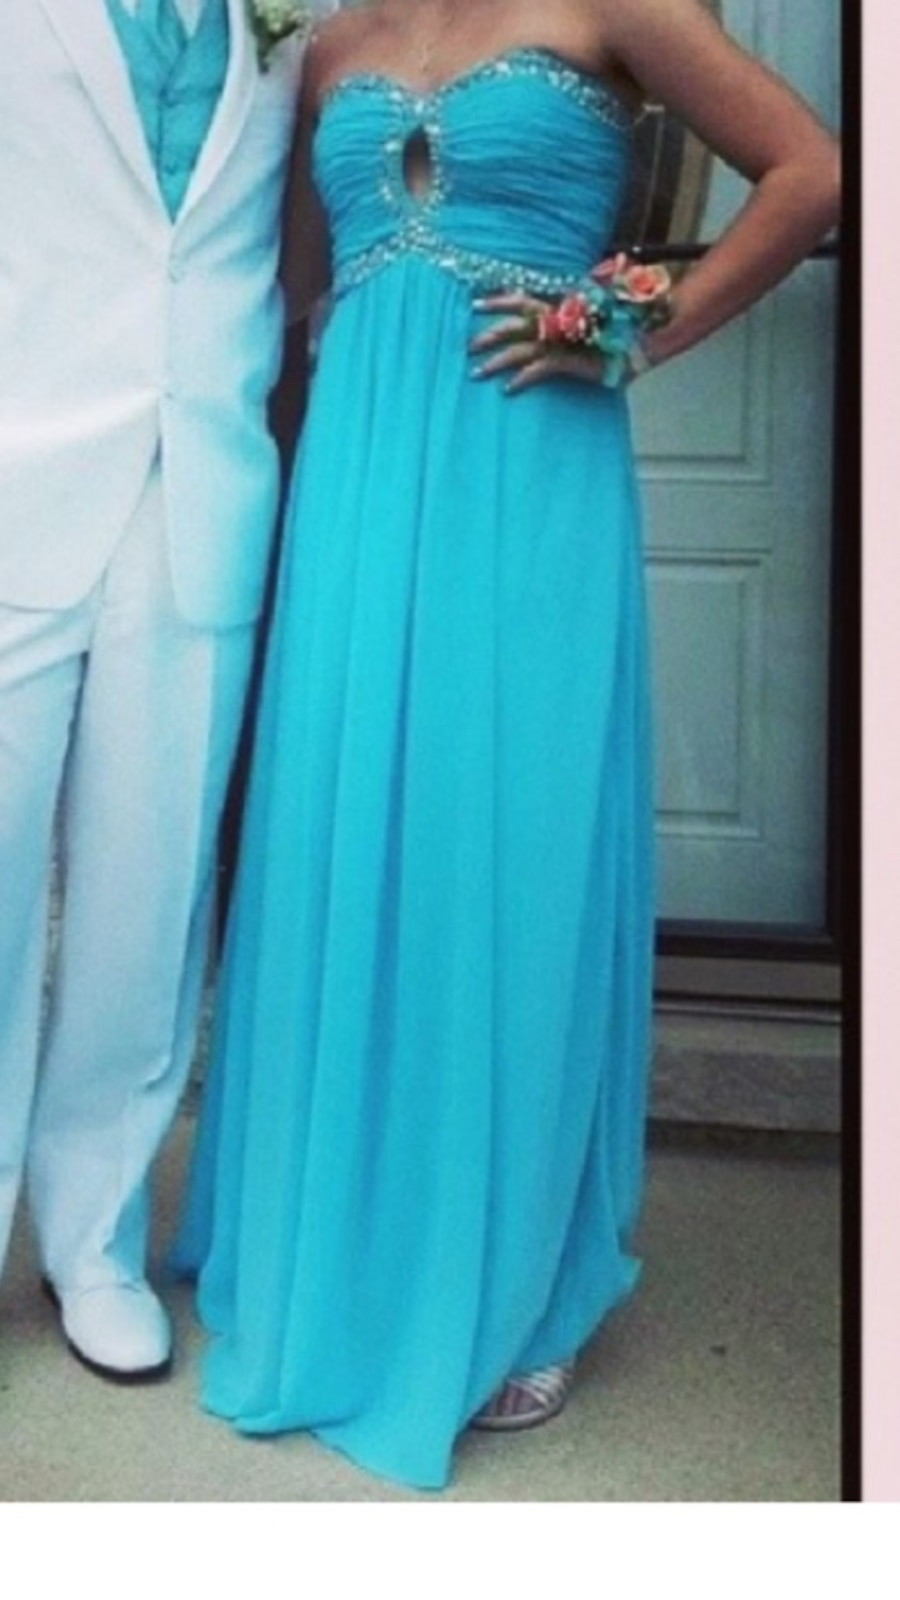 Size 10 . Women's teal tube dress - IL